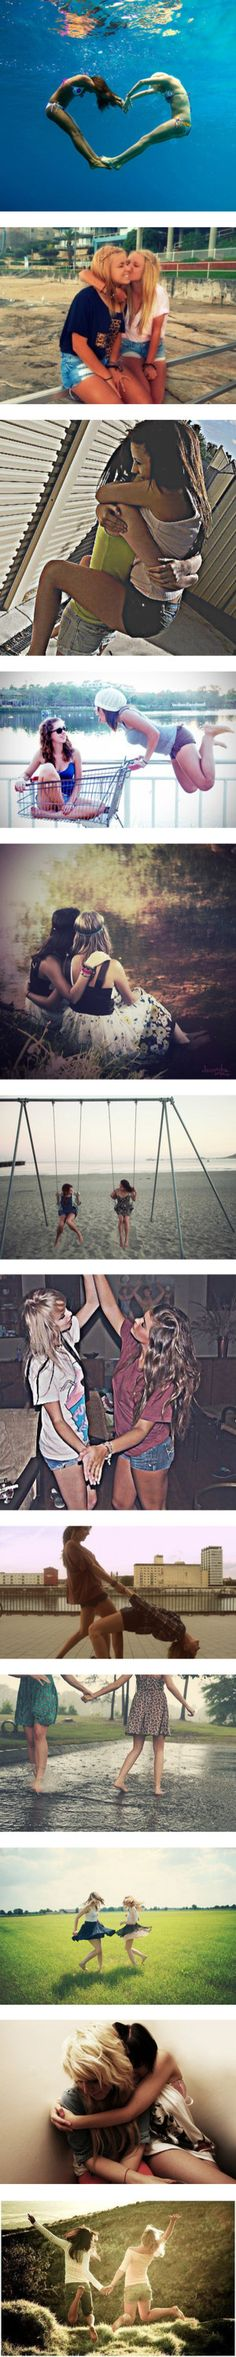 64 ideas photography ideas poses best friends bff pics for 2019 Best Friend Poses, Best Freinds, Love My Best Friend, Best Friends For Life, Best Friend Pictures, Bff Pictures, Friend Photos, Best Friends Forever, Friends In Love